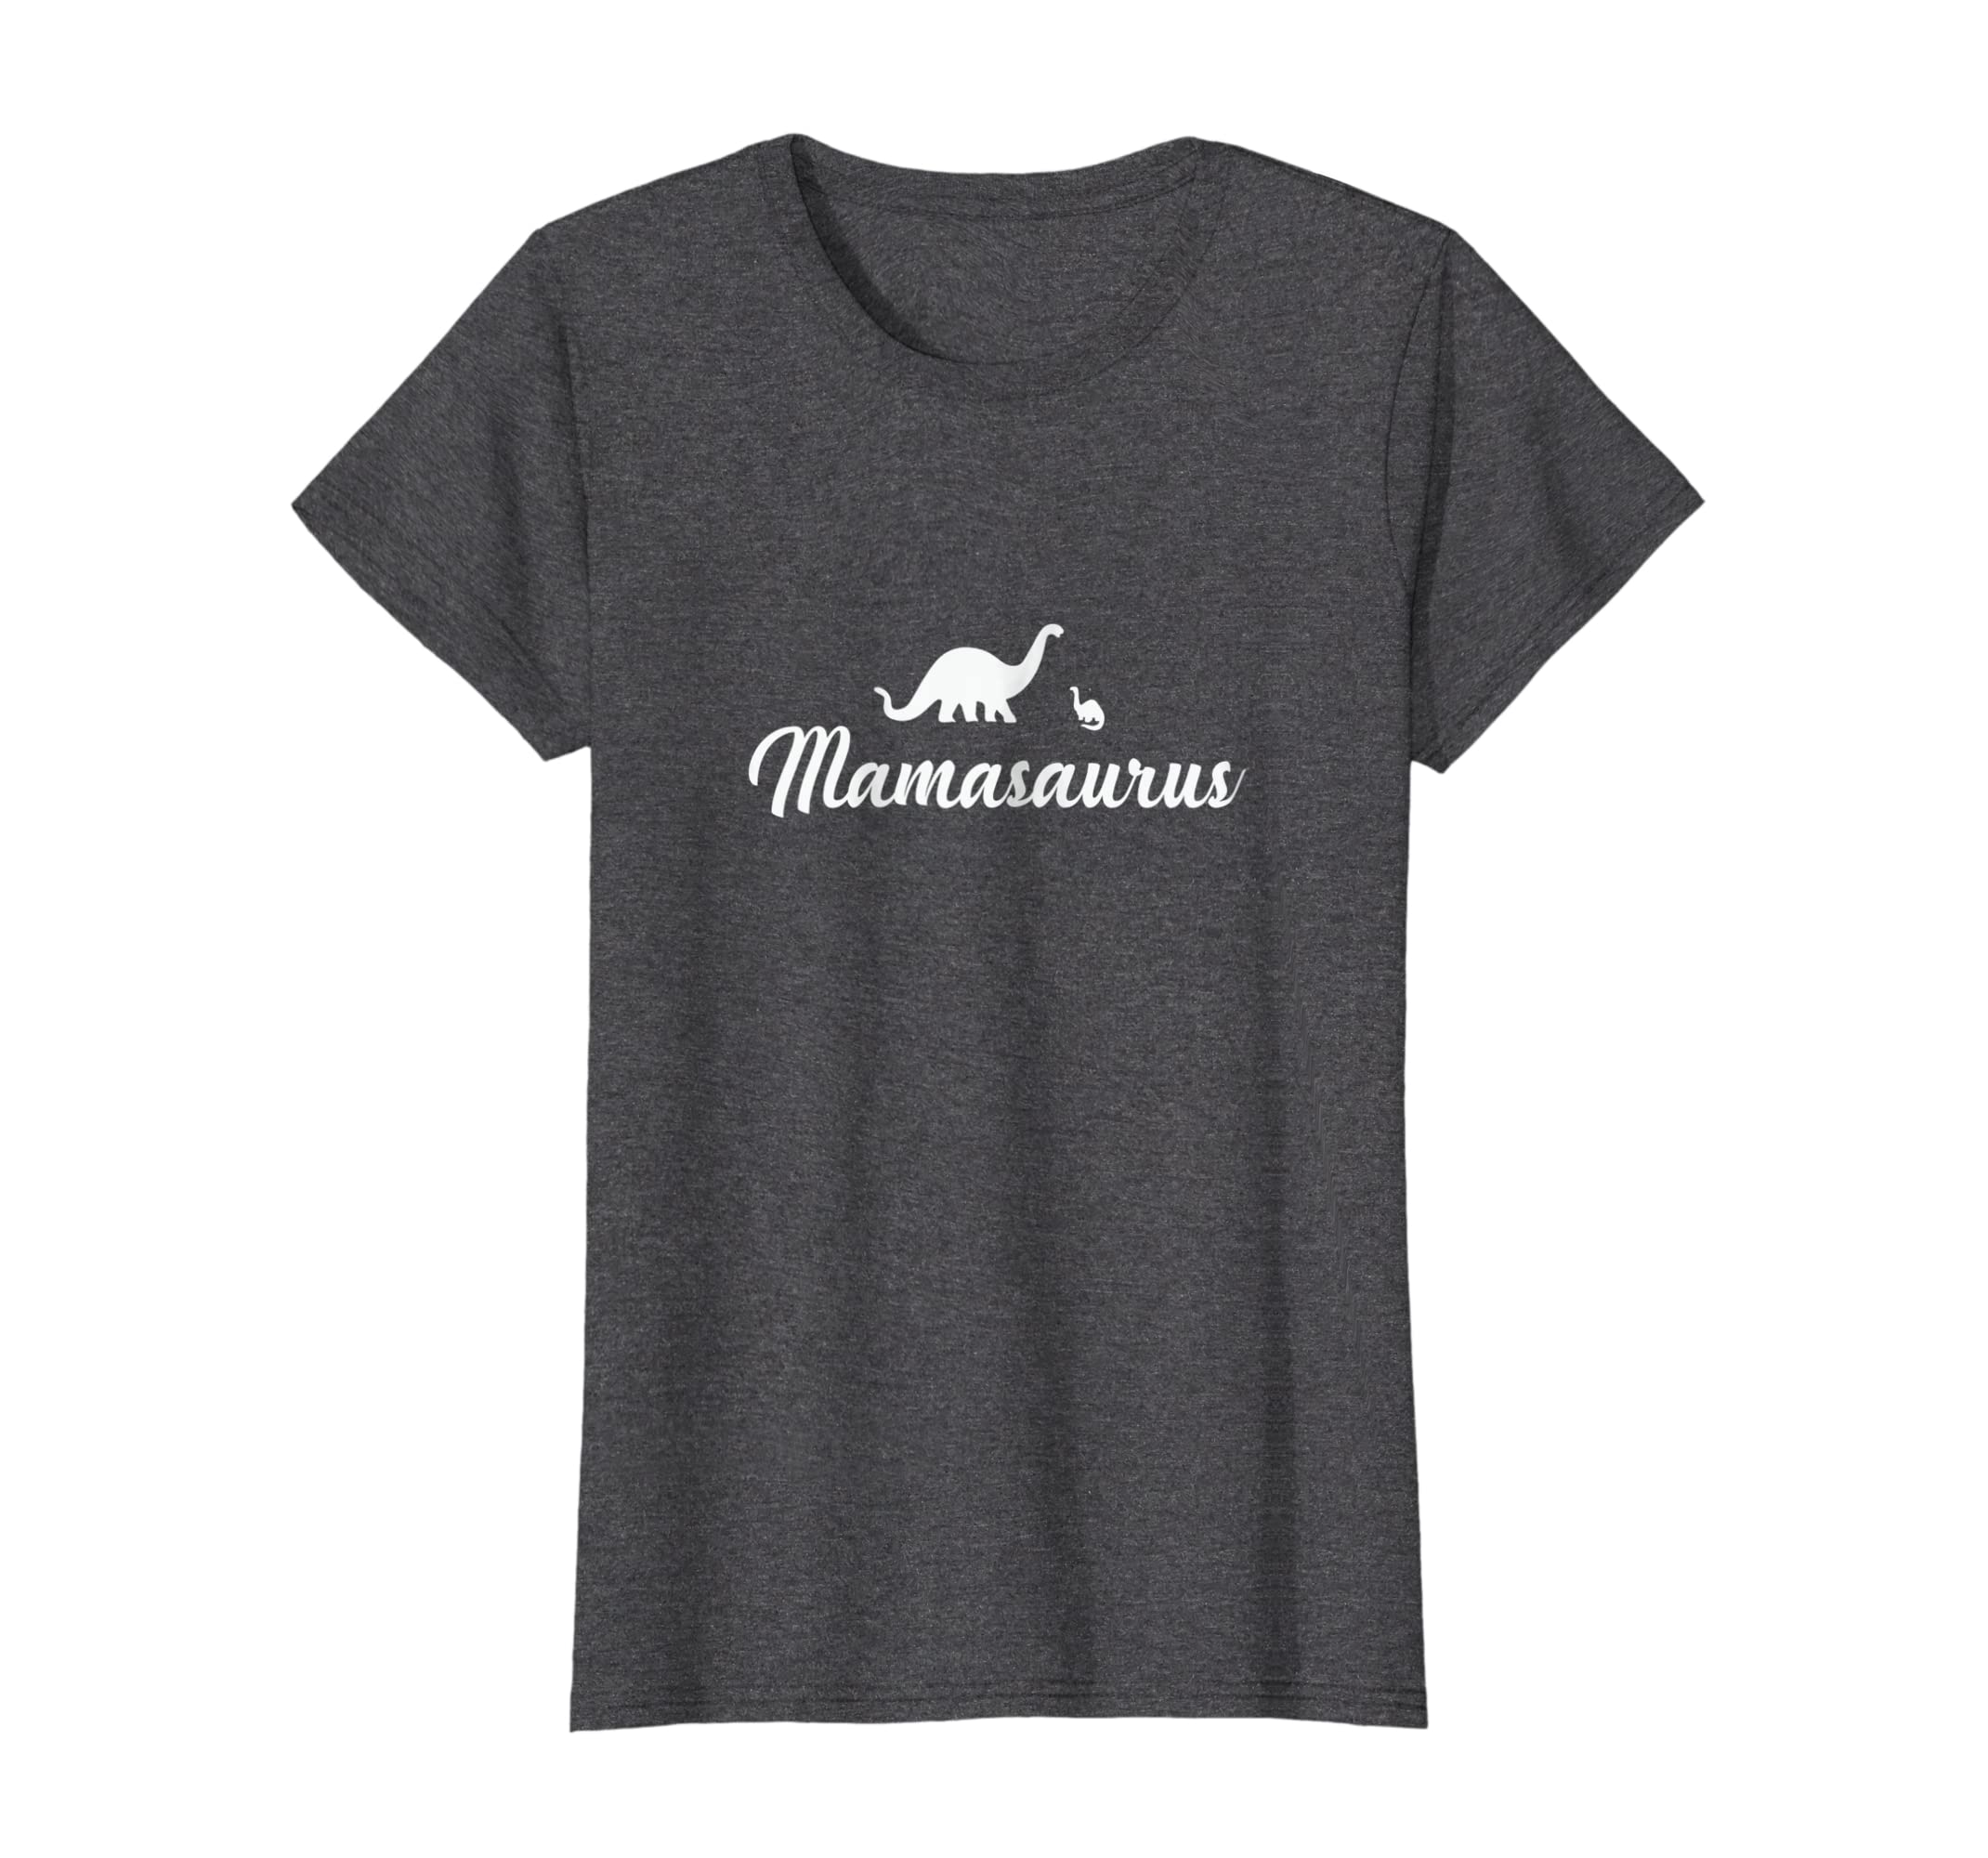 Womens Mamasaurus Premium T-Shirt for Mothers Day 2017-Teehay